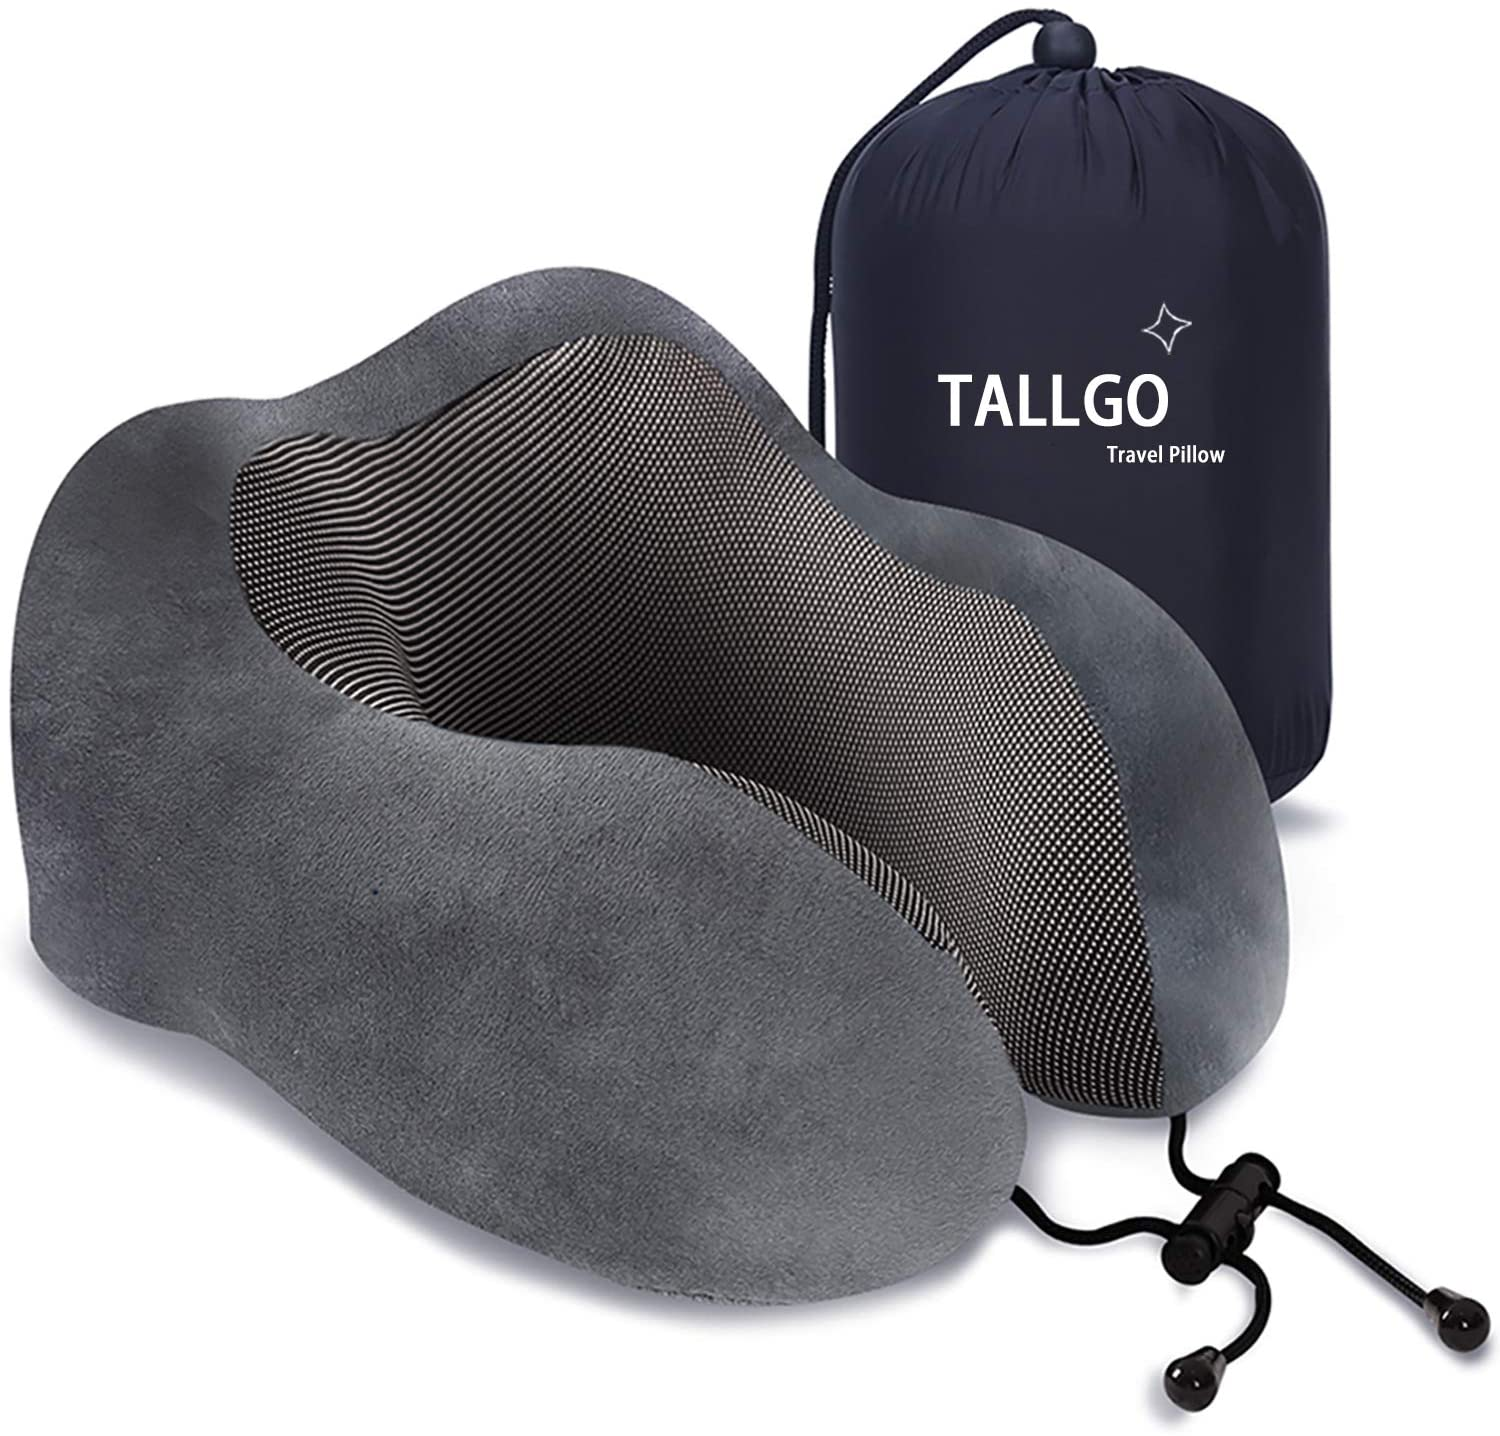 Travel Pillow, Best Memory Foam Neck Pillow Head Support Soft Pillow for Sleeping Rest, Airplane Car & Home Use (Grey)